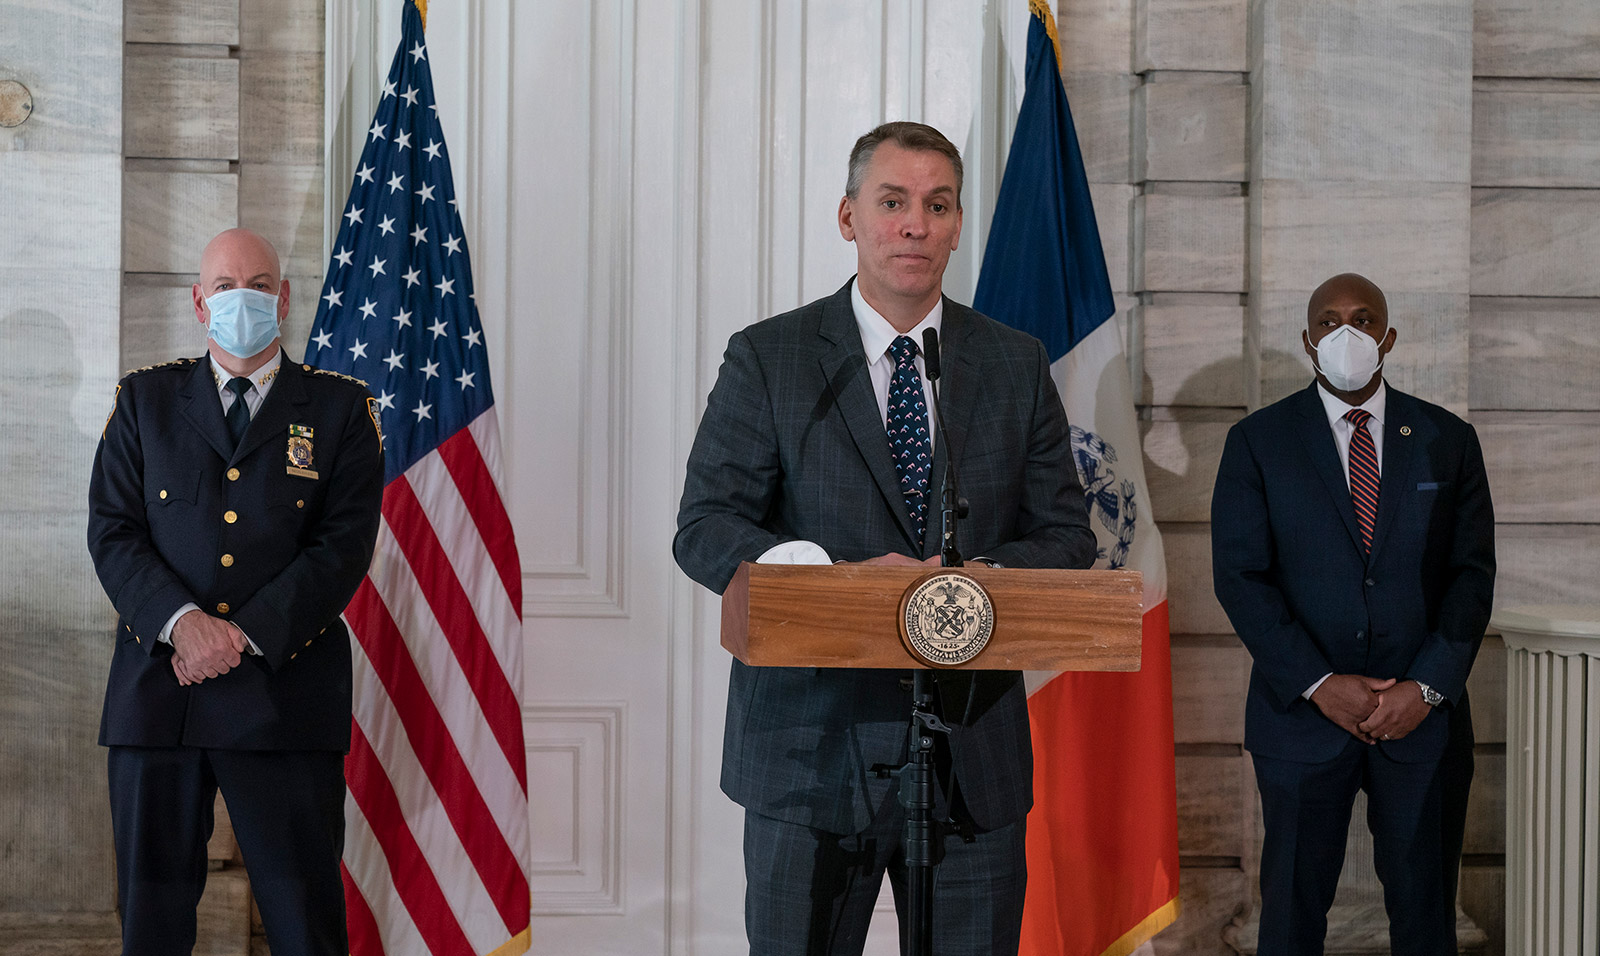 New York City Police Commissioner Dermot Shea speaks to the media on May 29.